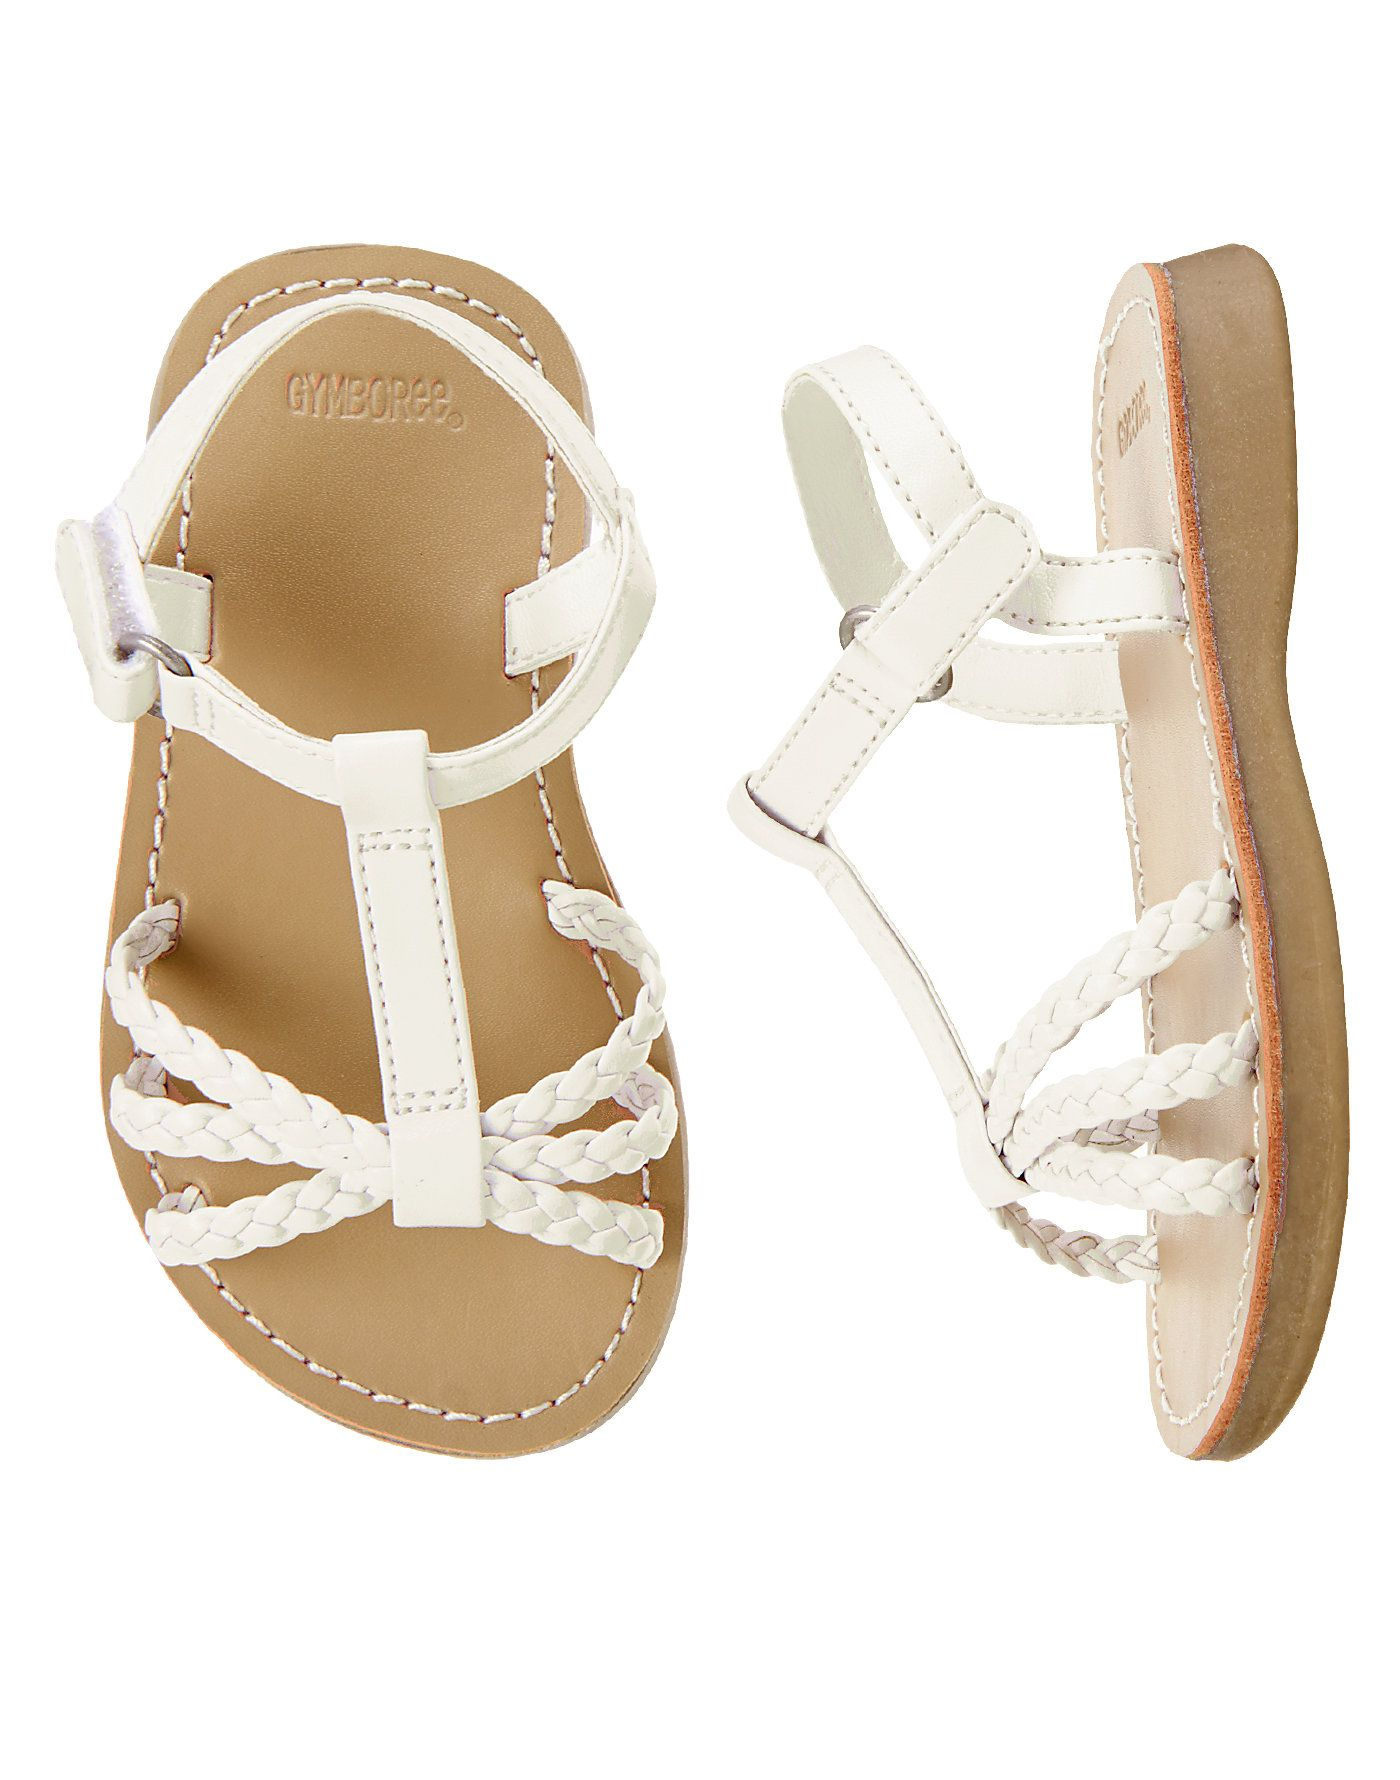 Braided Sandals at Gymboree